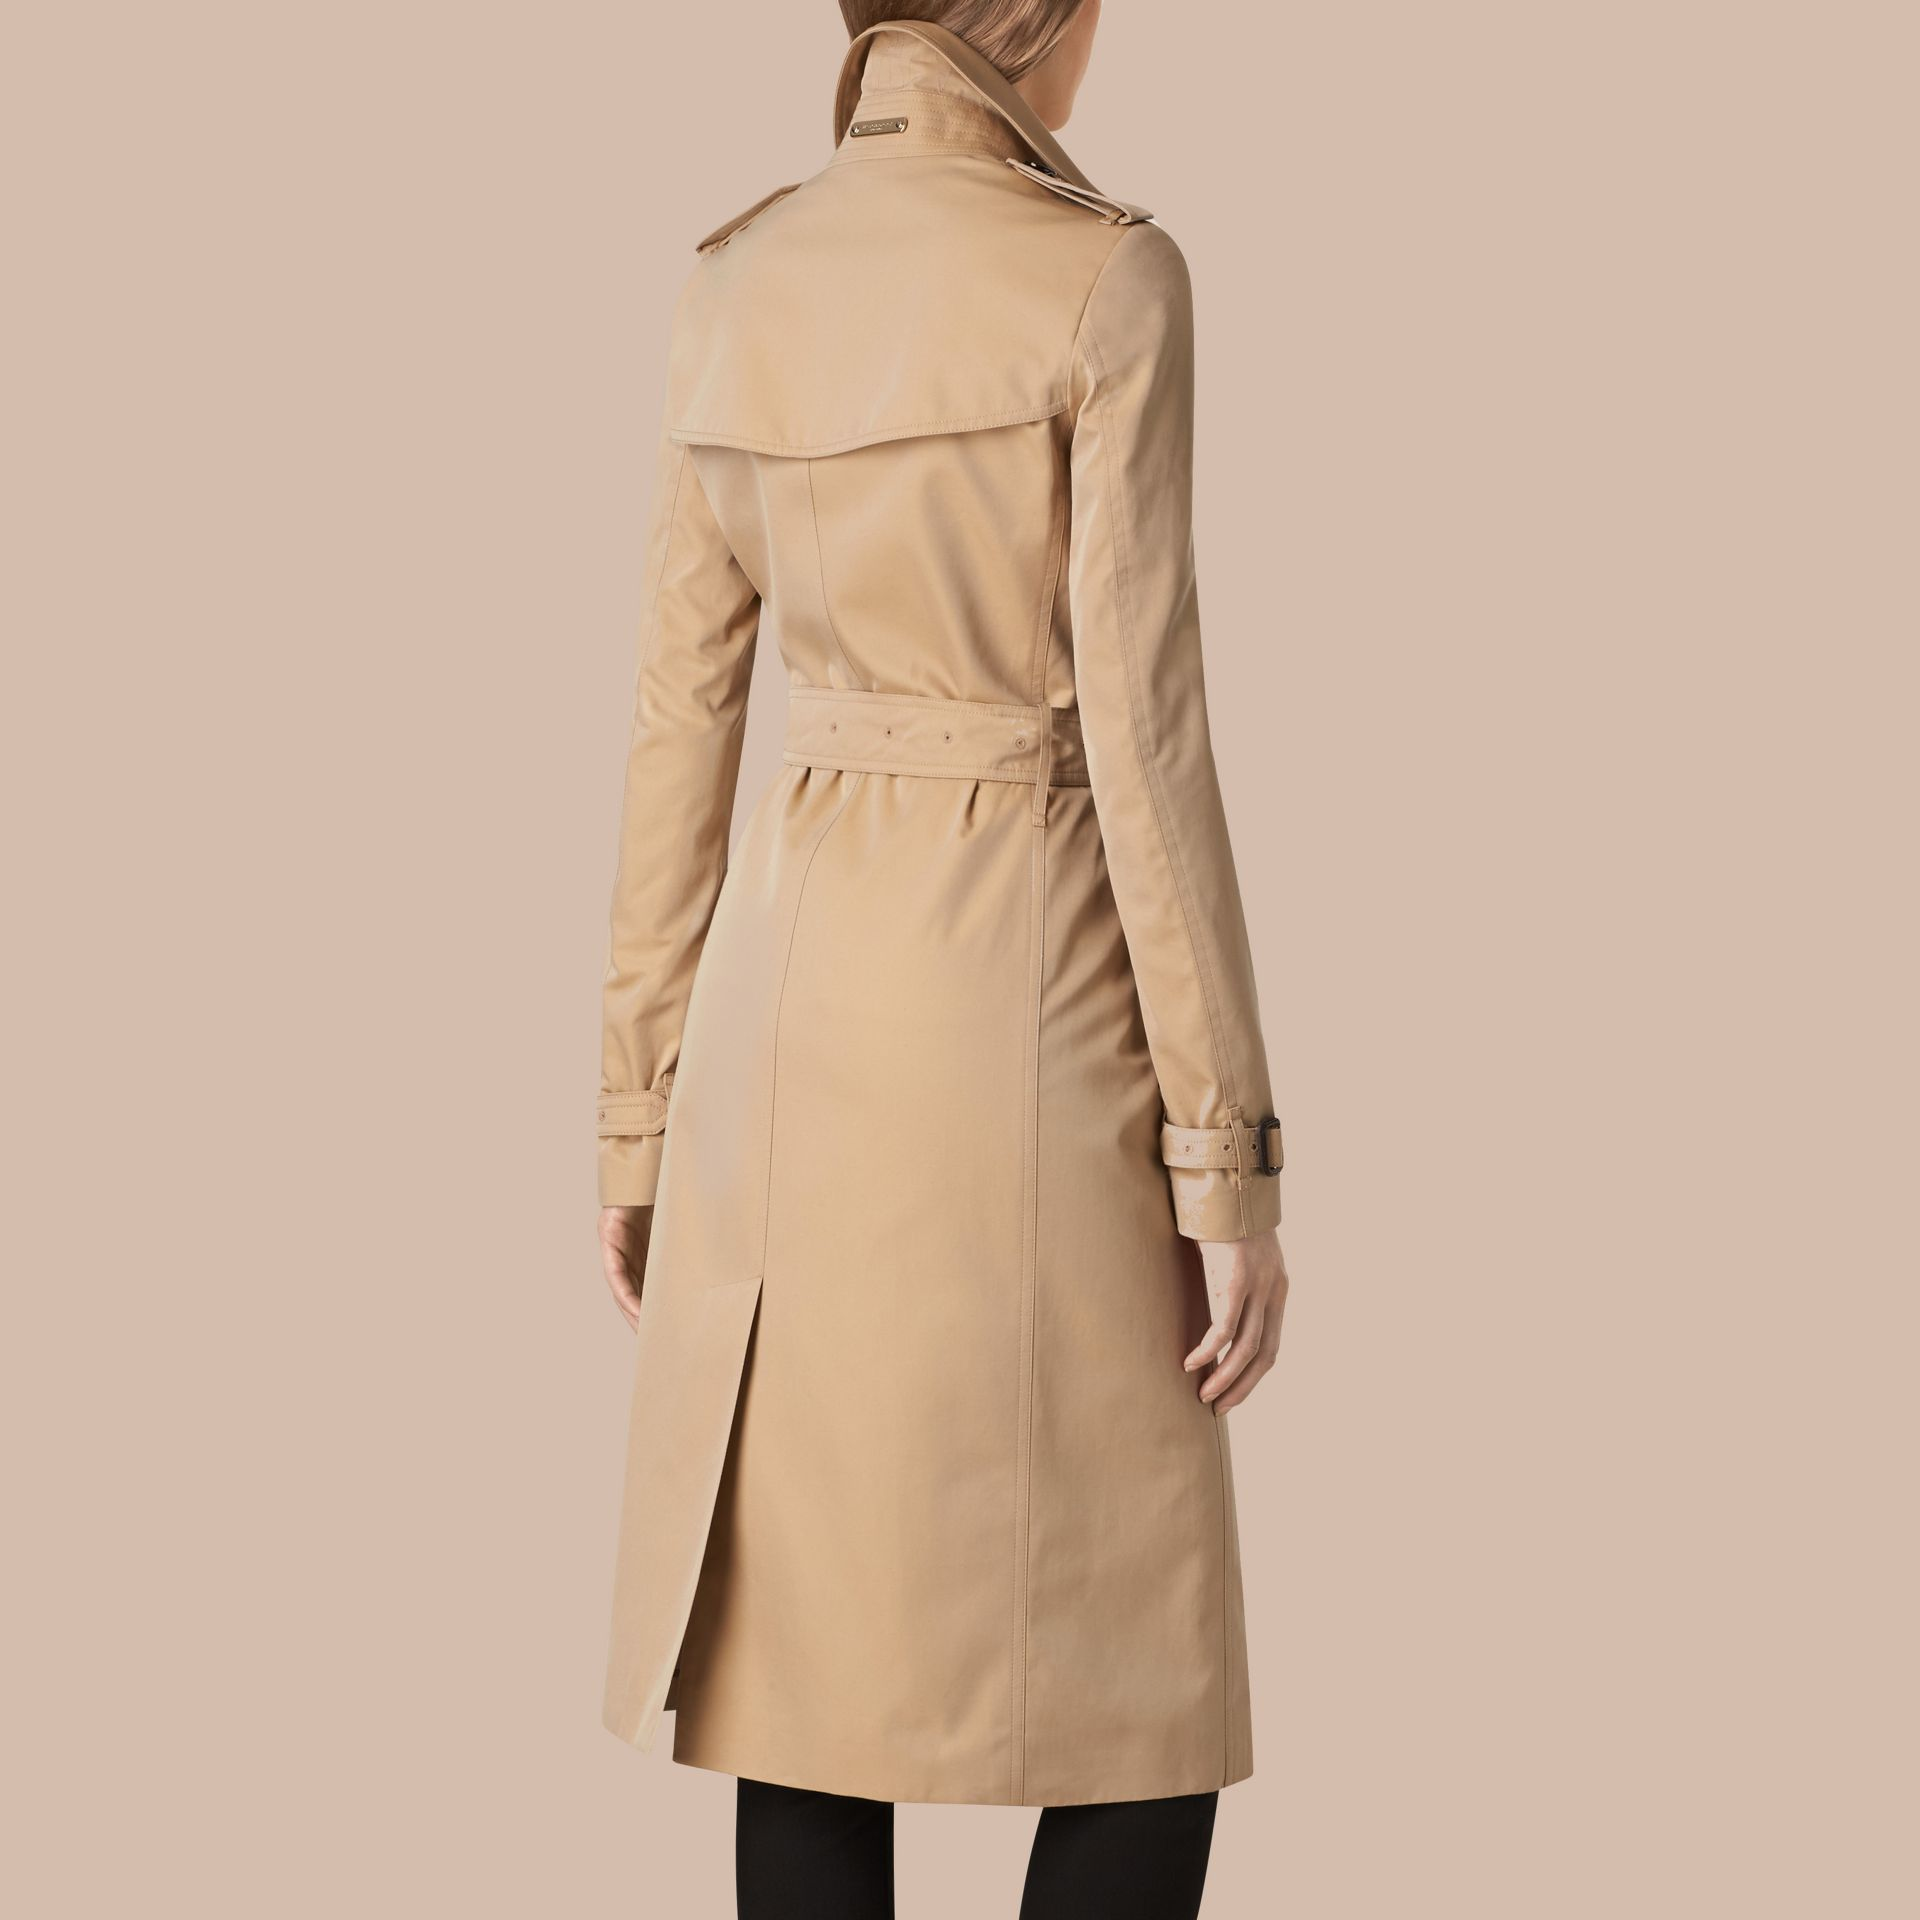 Cotton Gabardine Trench Coat - Women | Burberry Singapore - gallery image 3